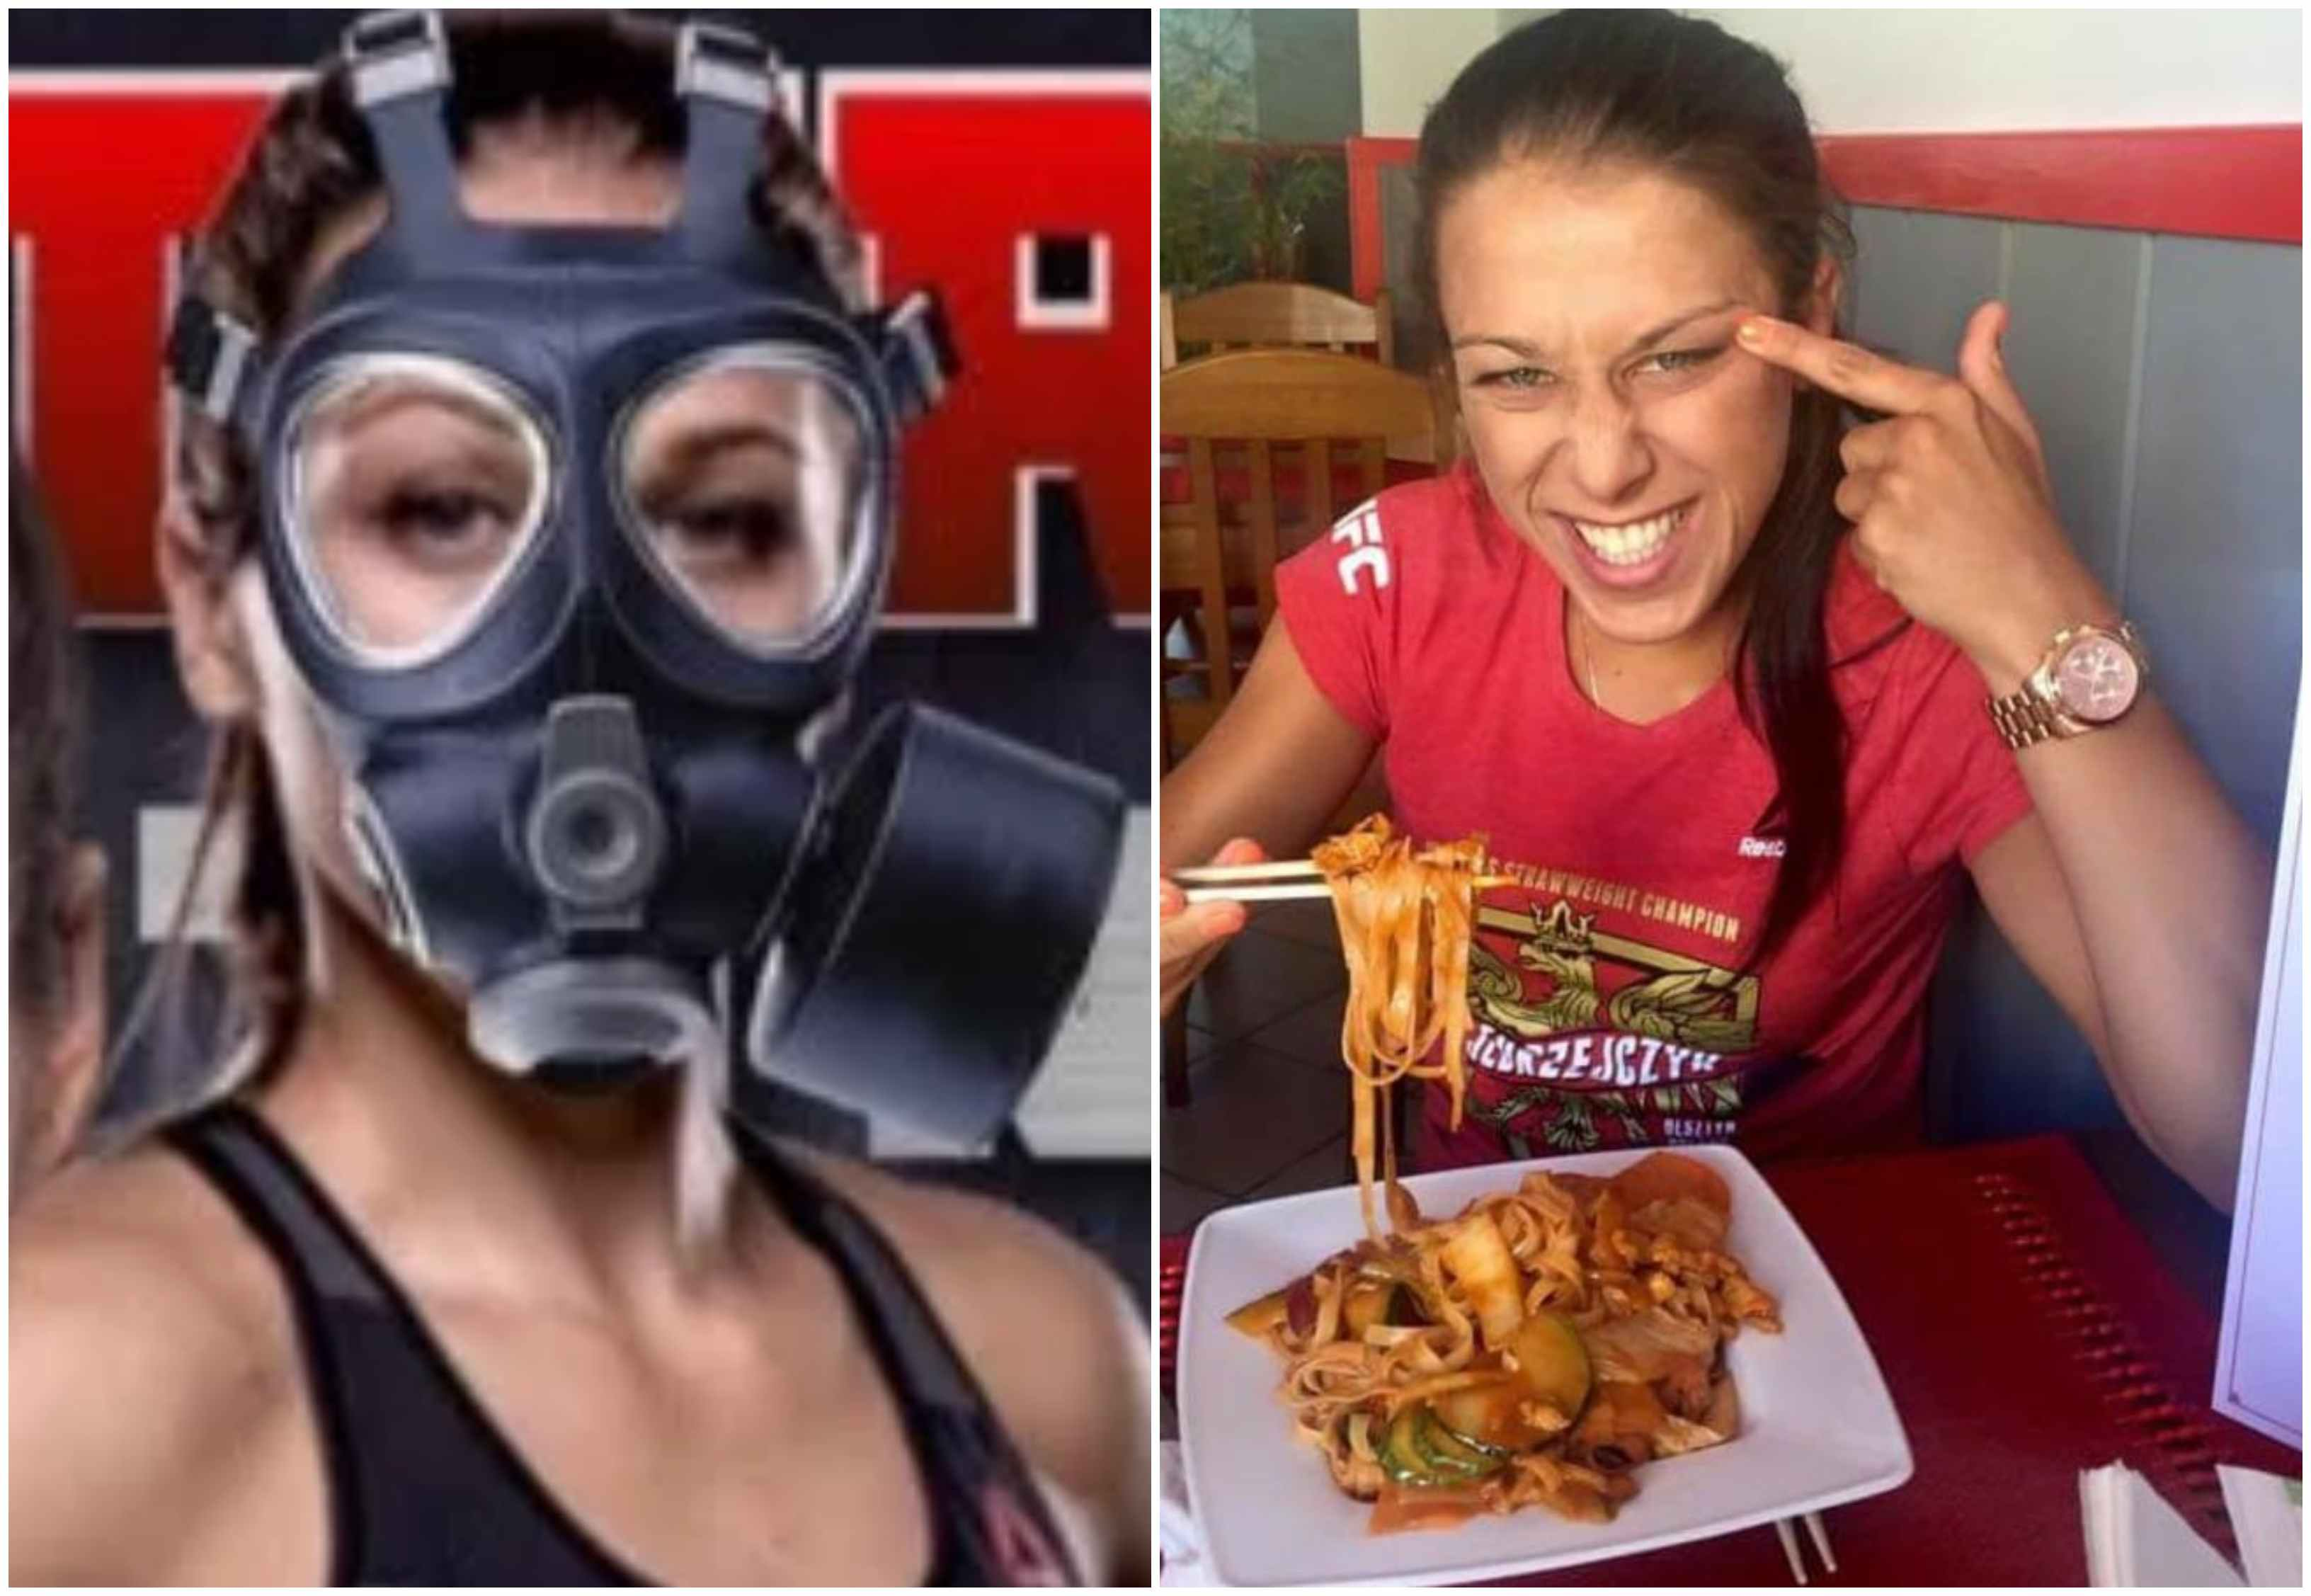 UFC News: Joanna Jedrzejczyk posts racially provocative content then apologises to Weili Zhang about it - Weili Zhang